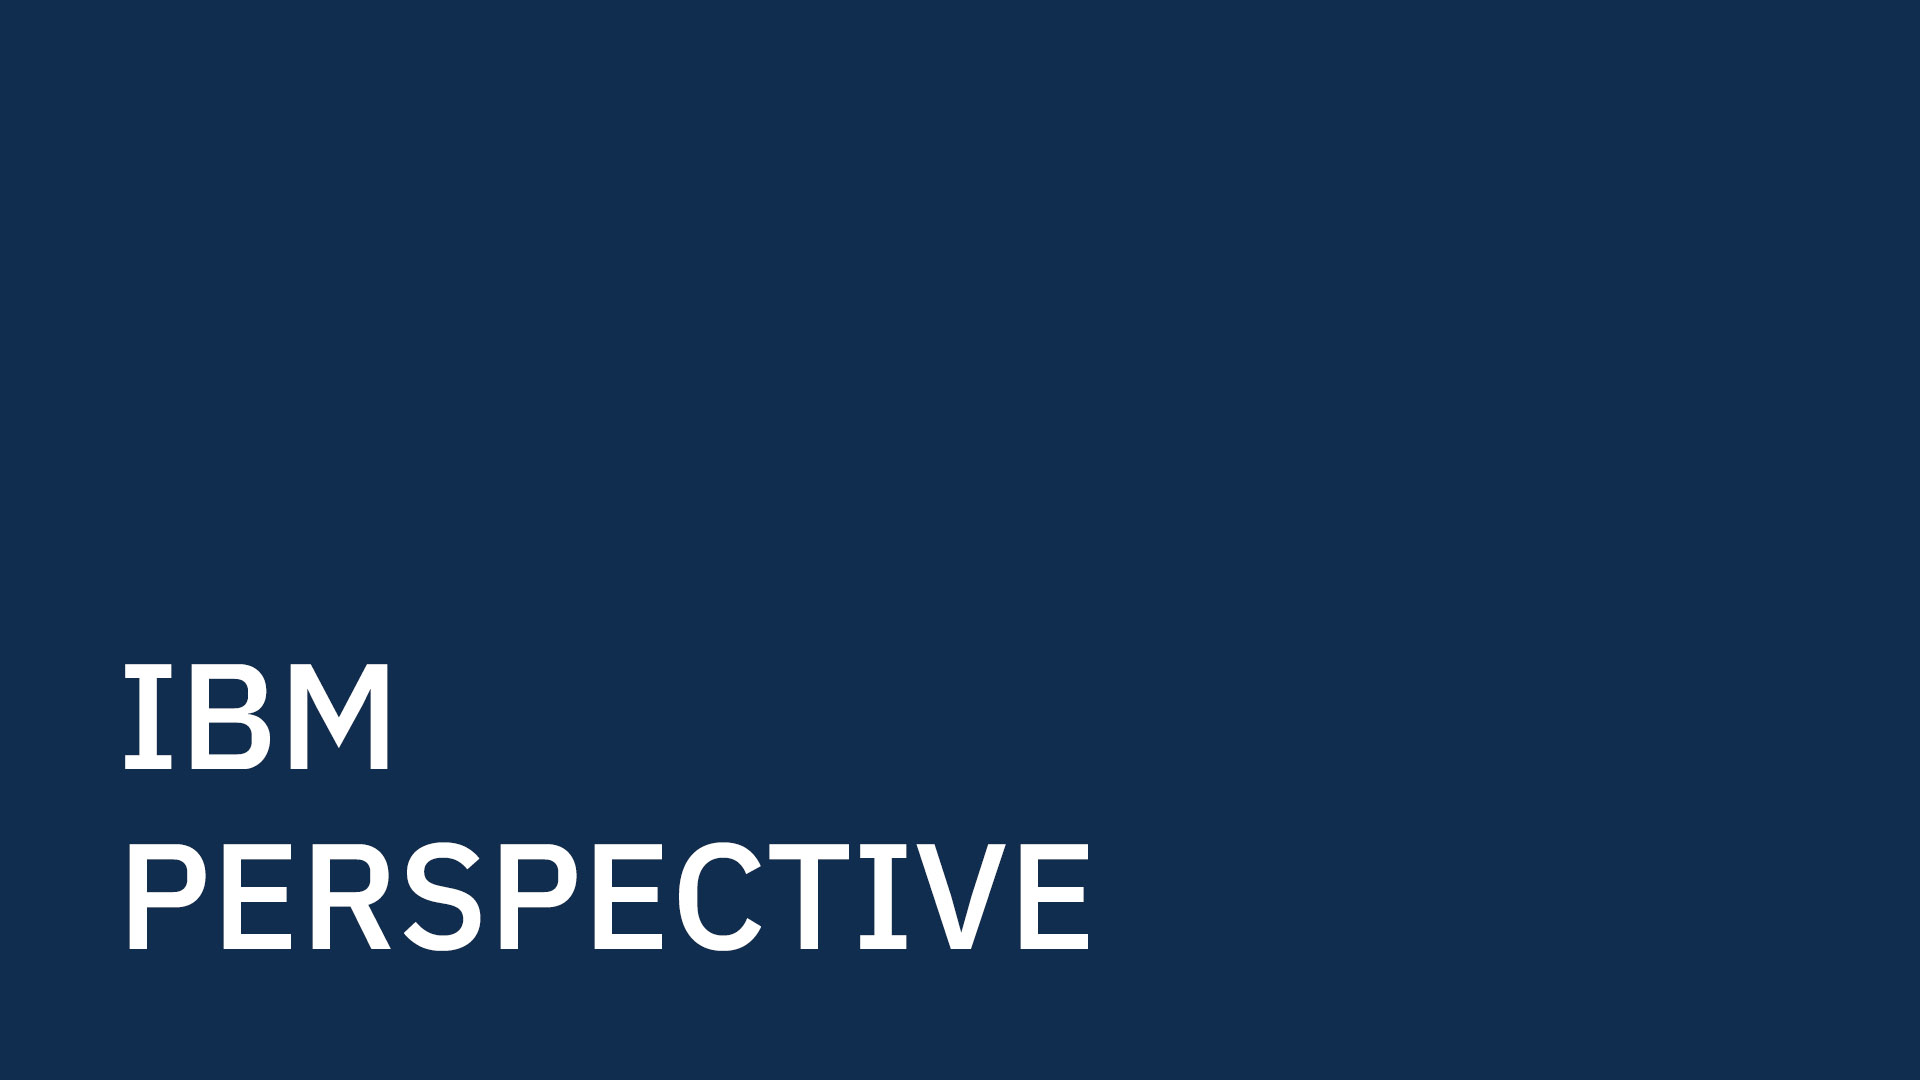 IBM Perspective in white type against a navy blue background.